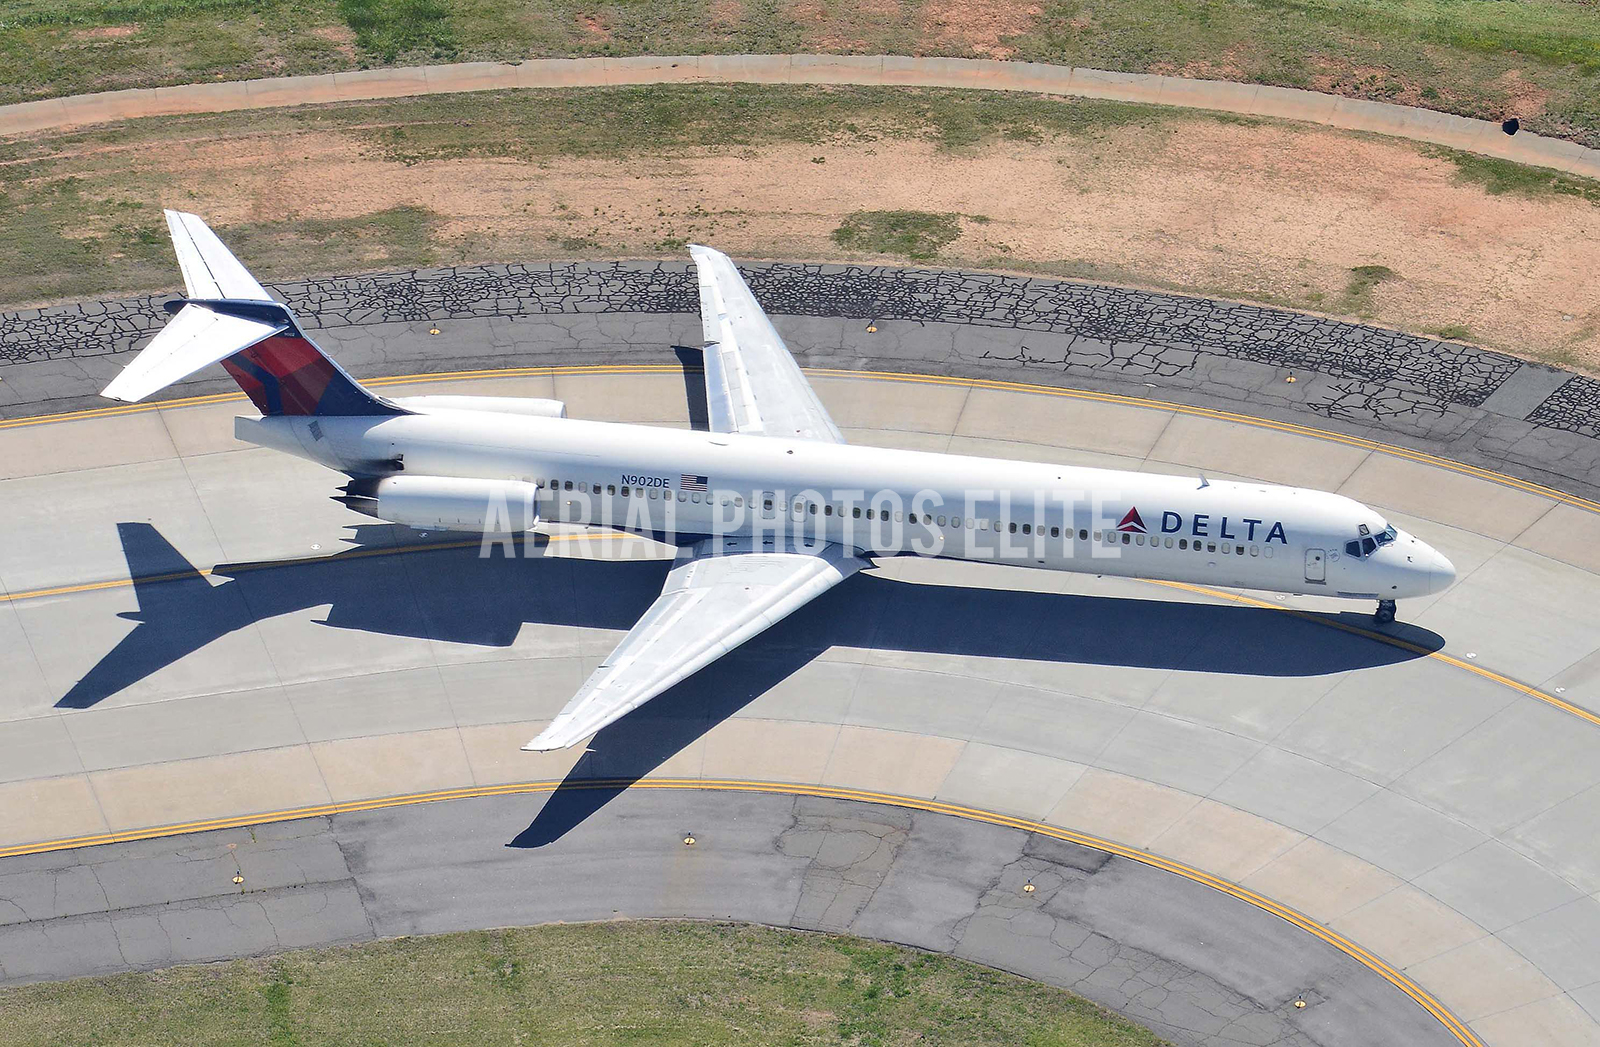 Aerial Photos Elite Delta Charlotte Douglas International Airport | Aerial Photos Elite